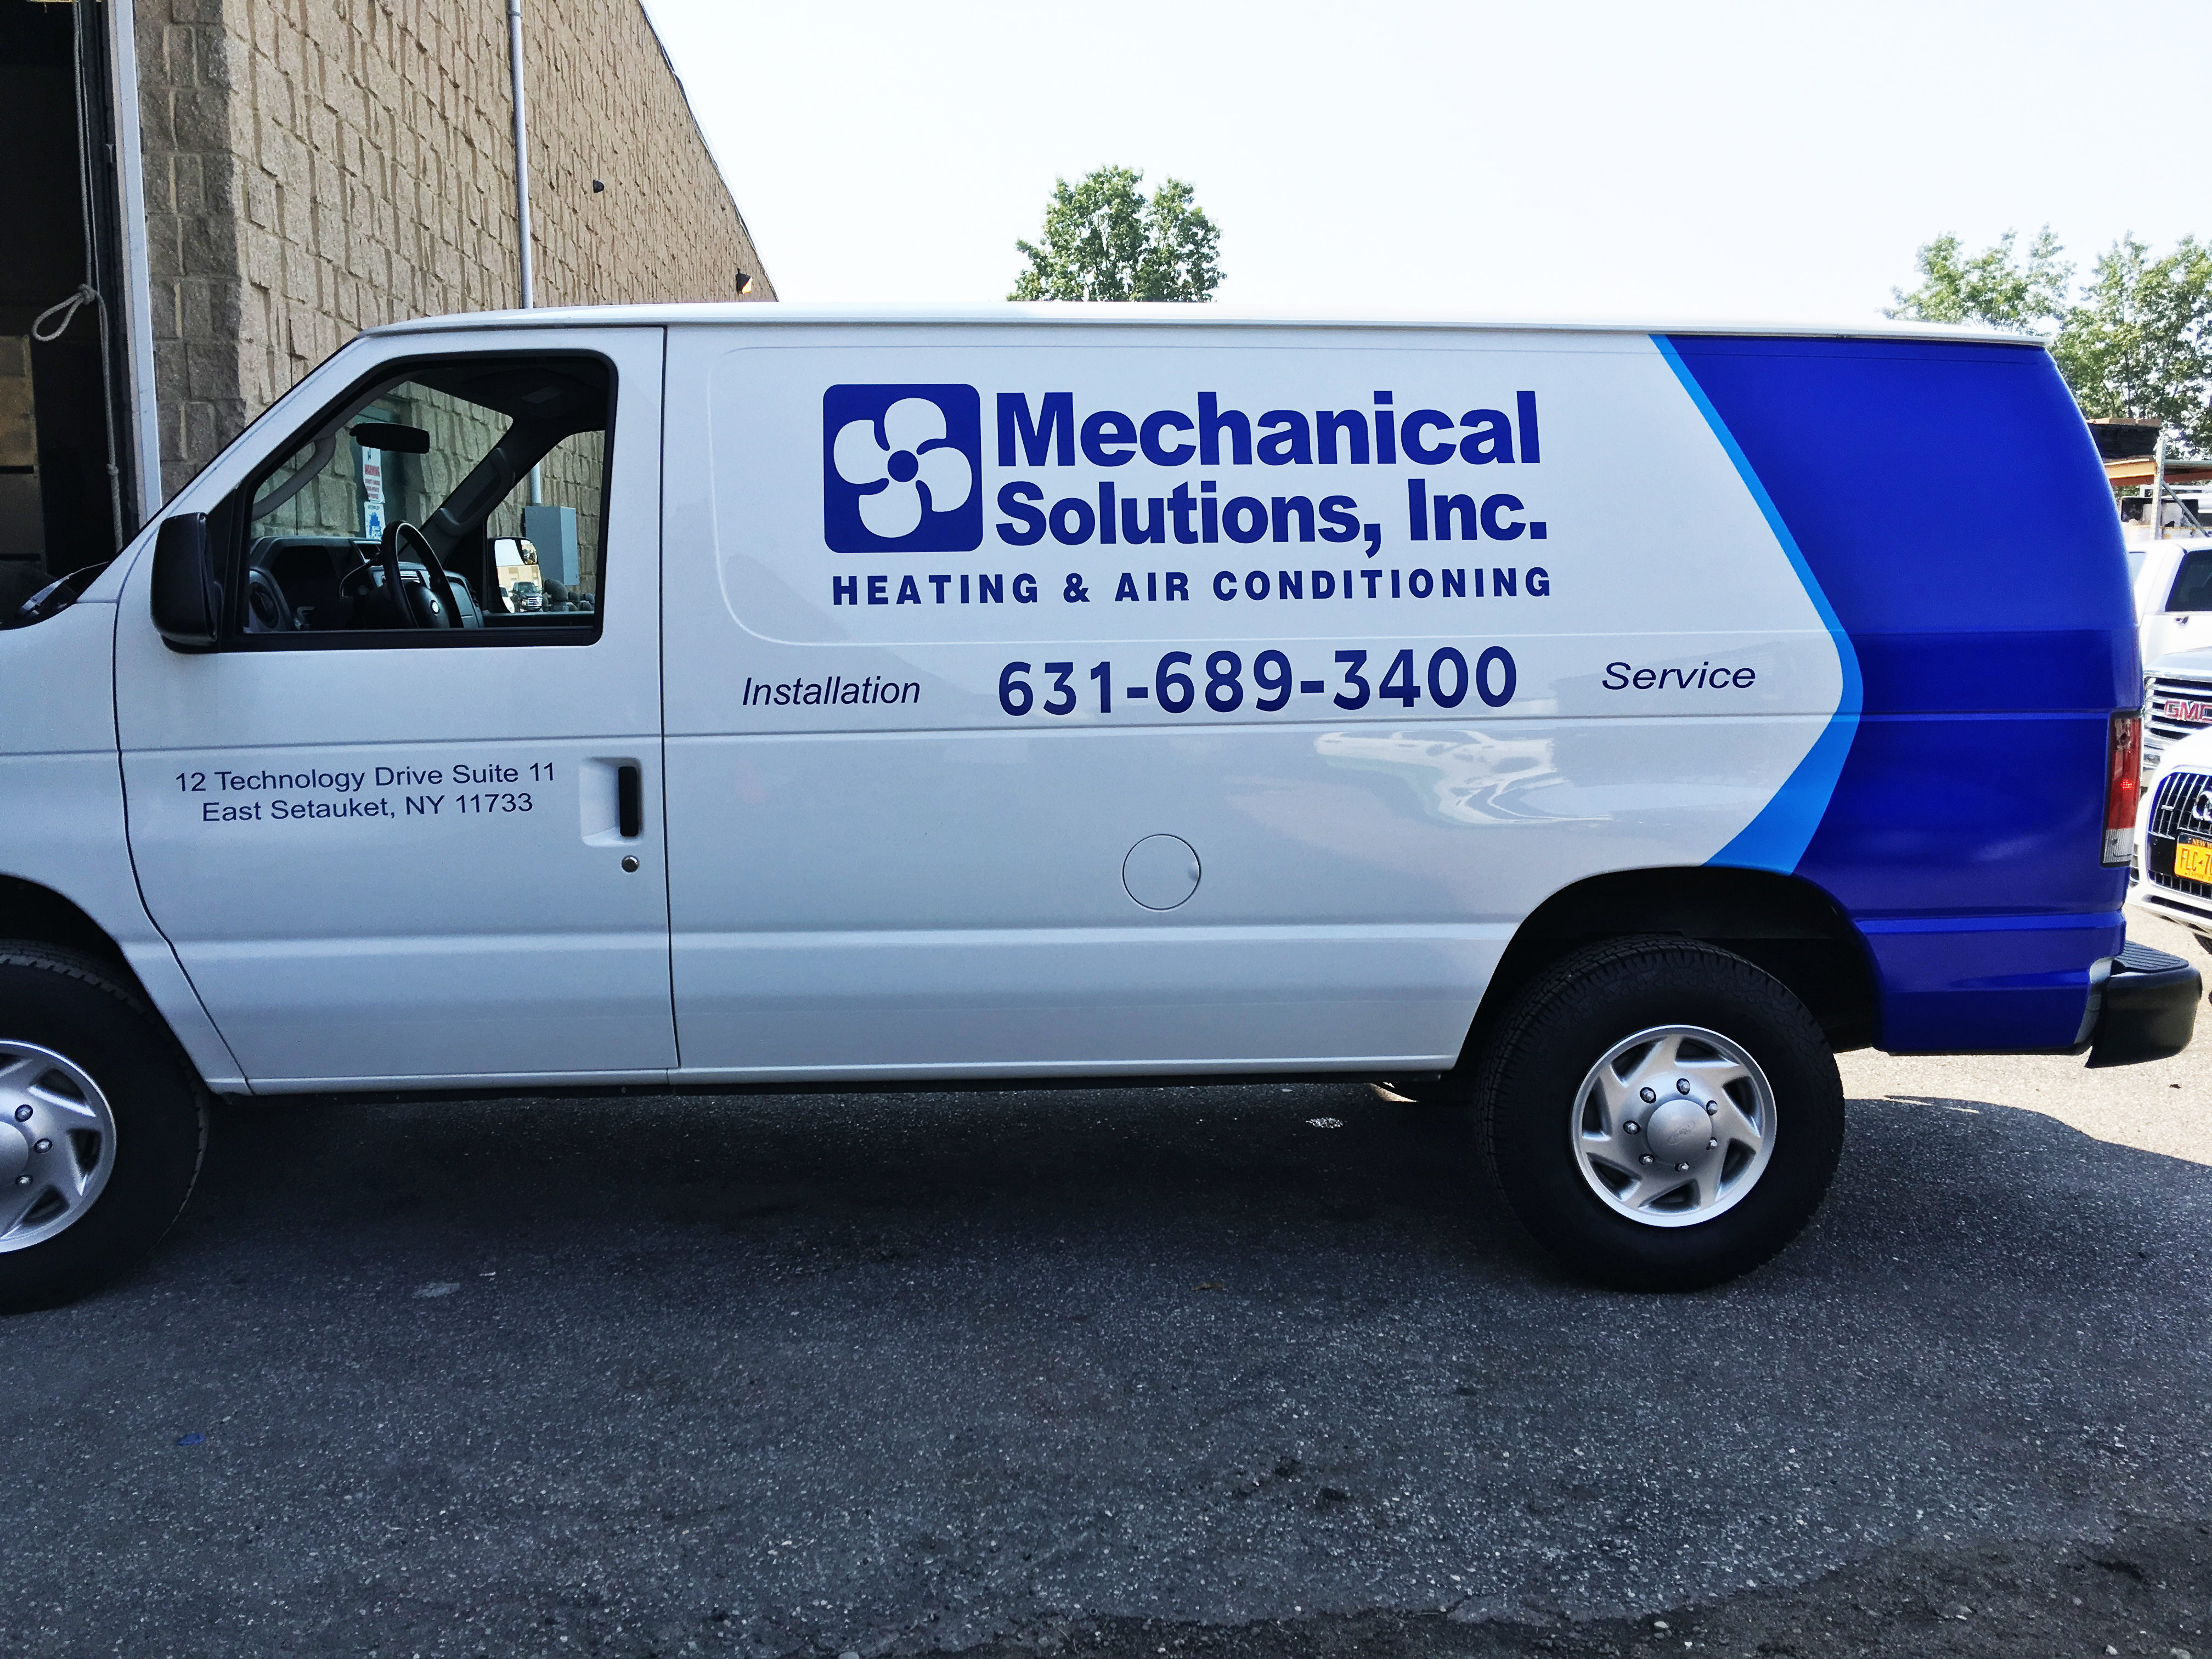 MechanicalSolutions